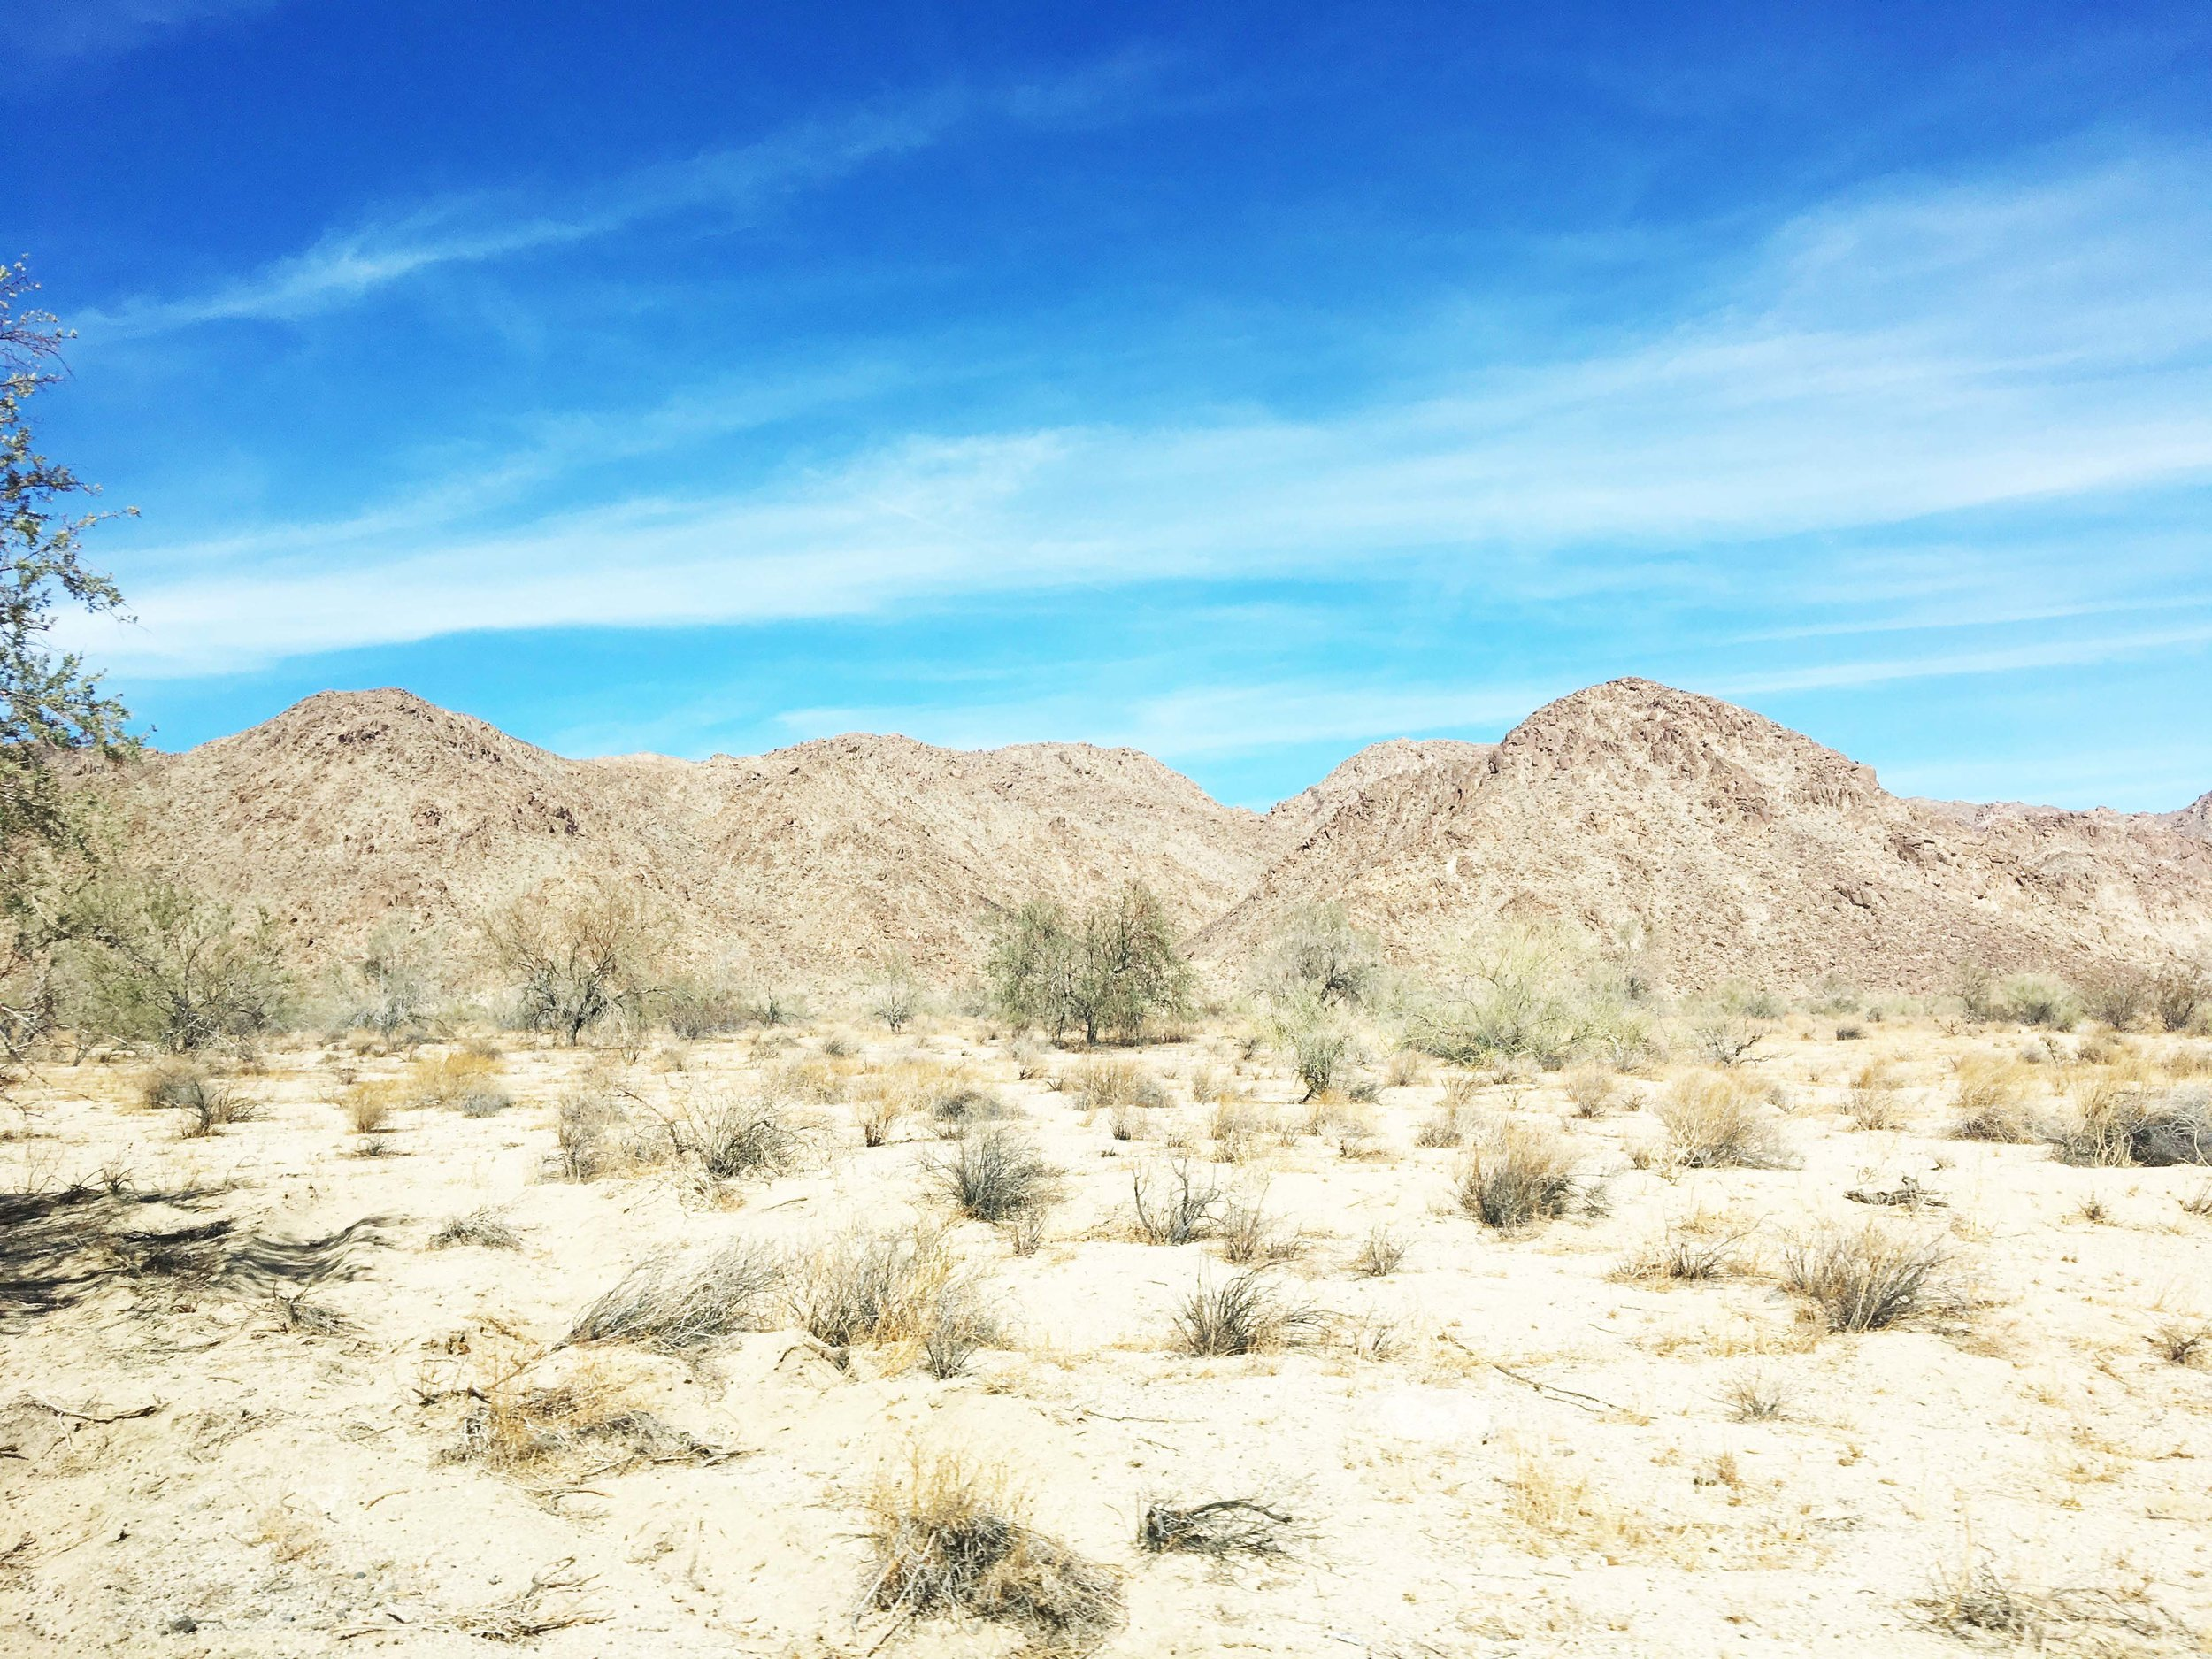 the more barren parts of joshua tree on the southern side of the park